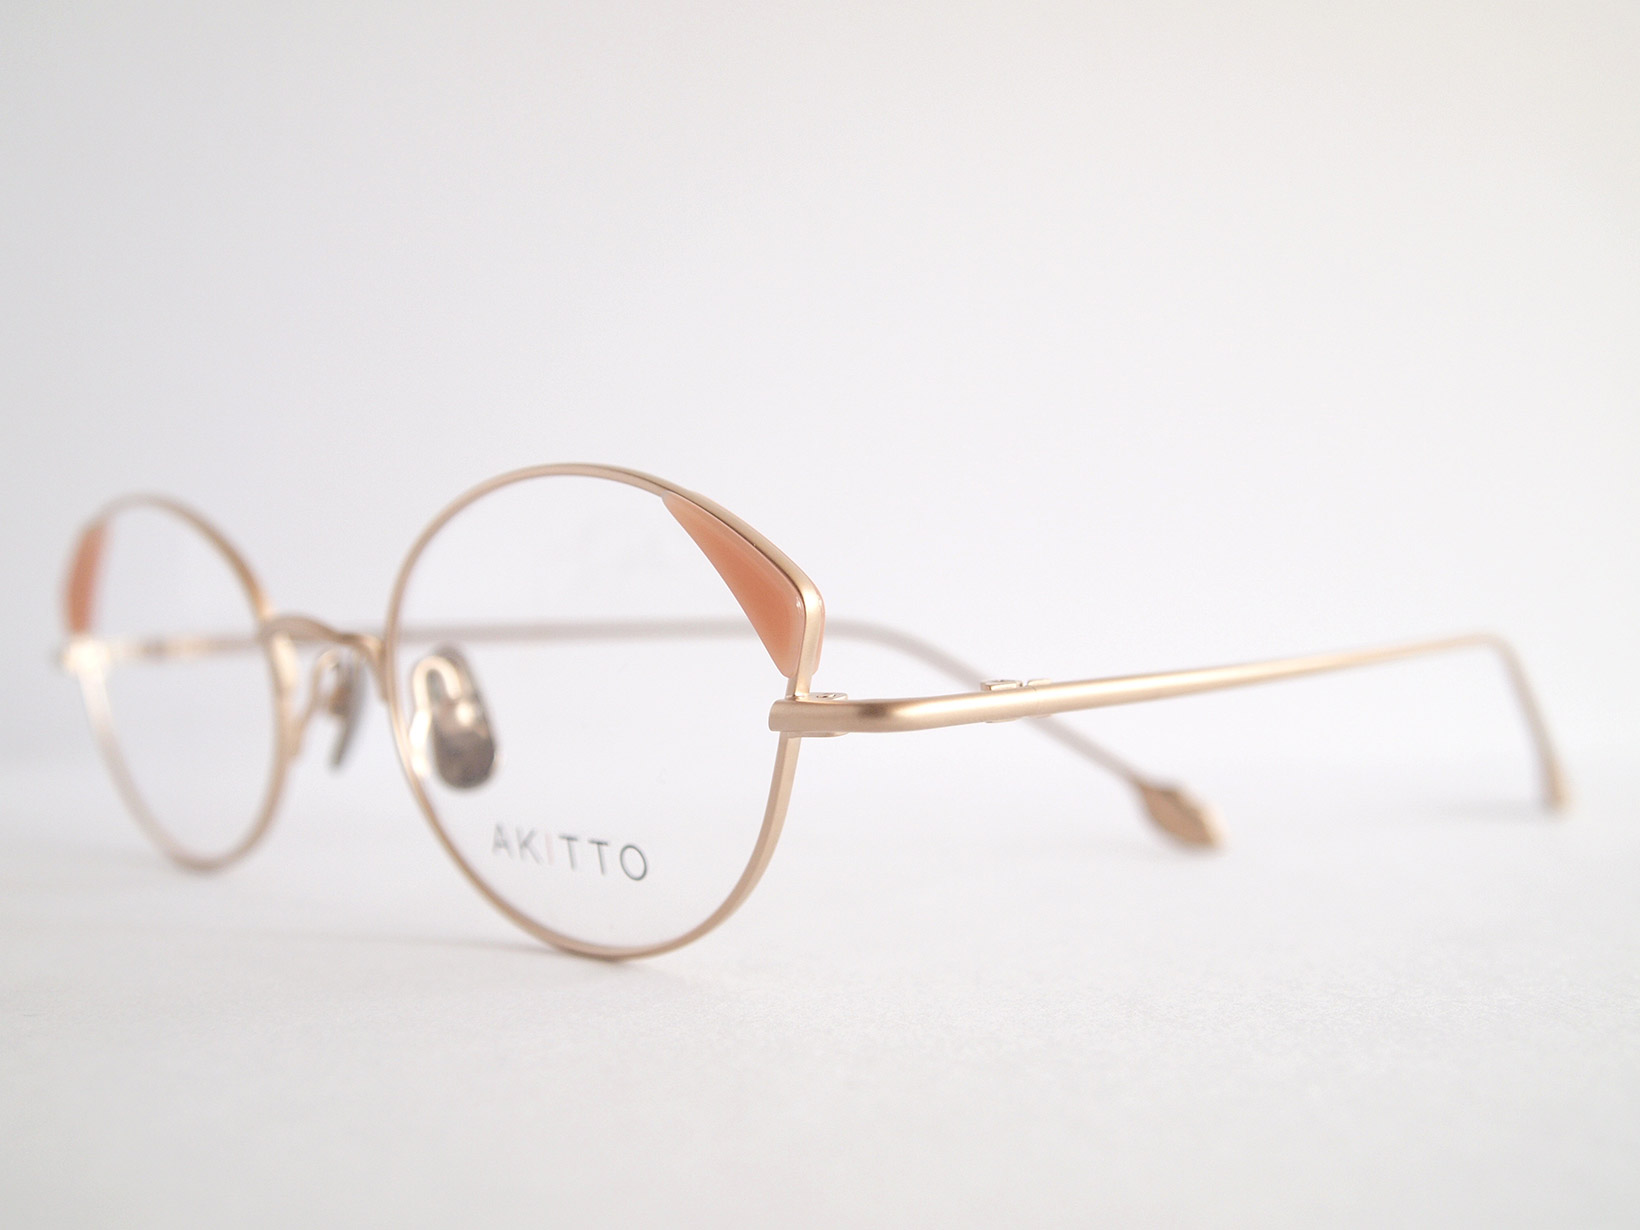 AKITTO 2018-4th pin4 color|MP size:47□19 material:titanium+acetate price:¥42,000-(+tax)